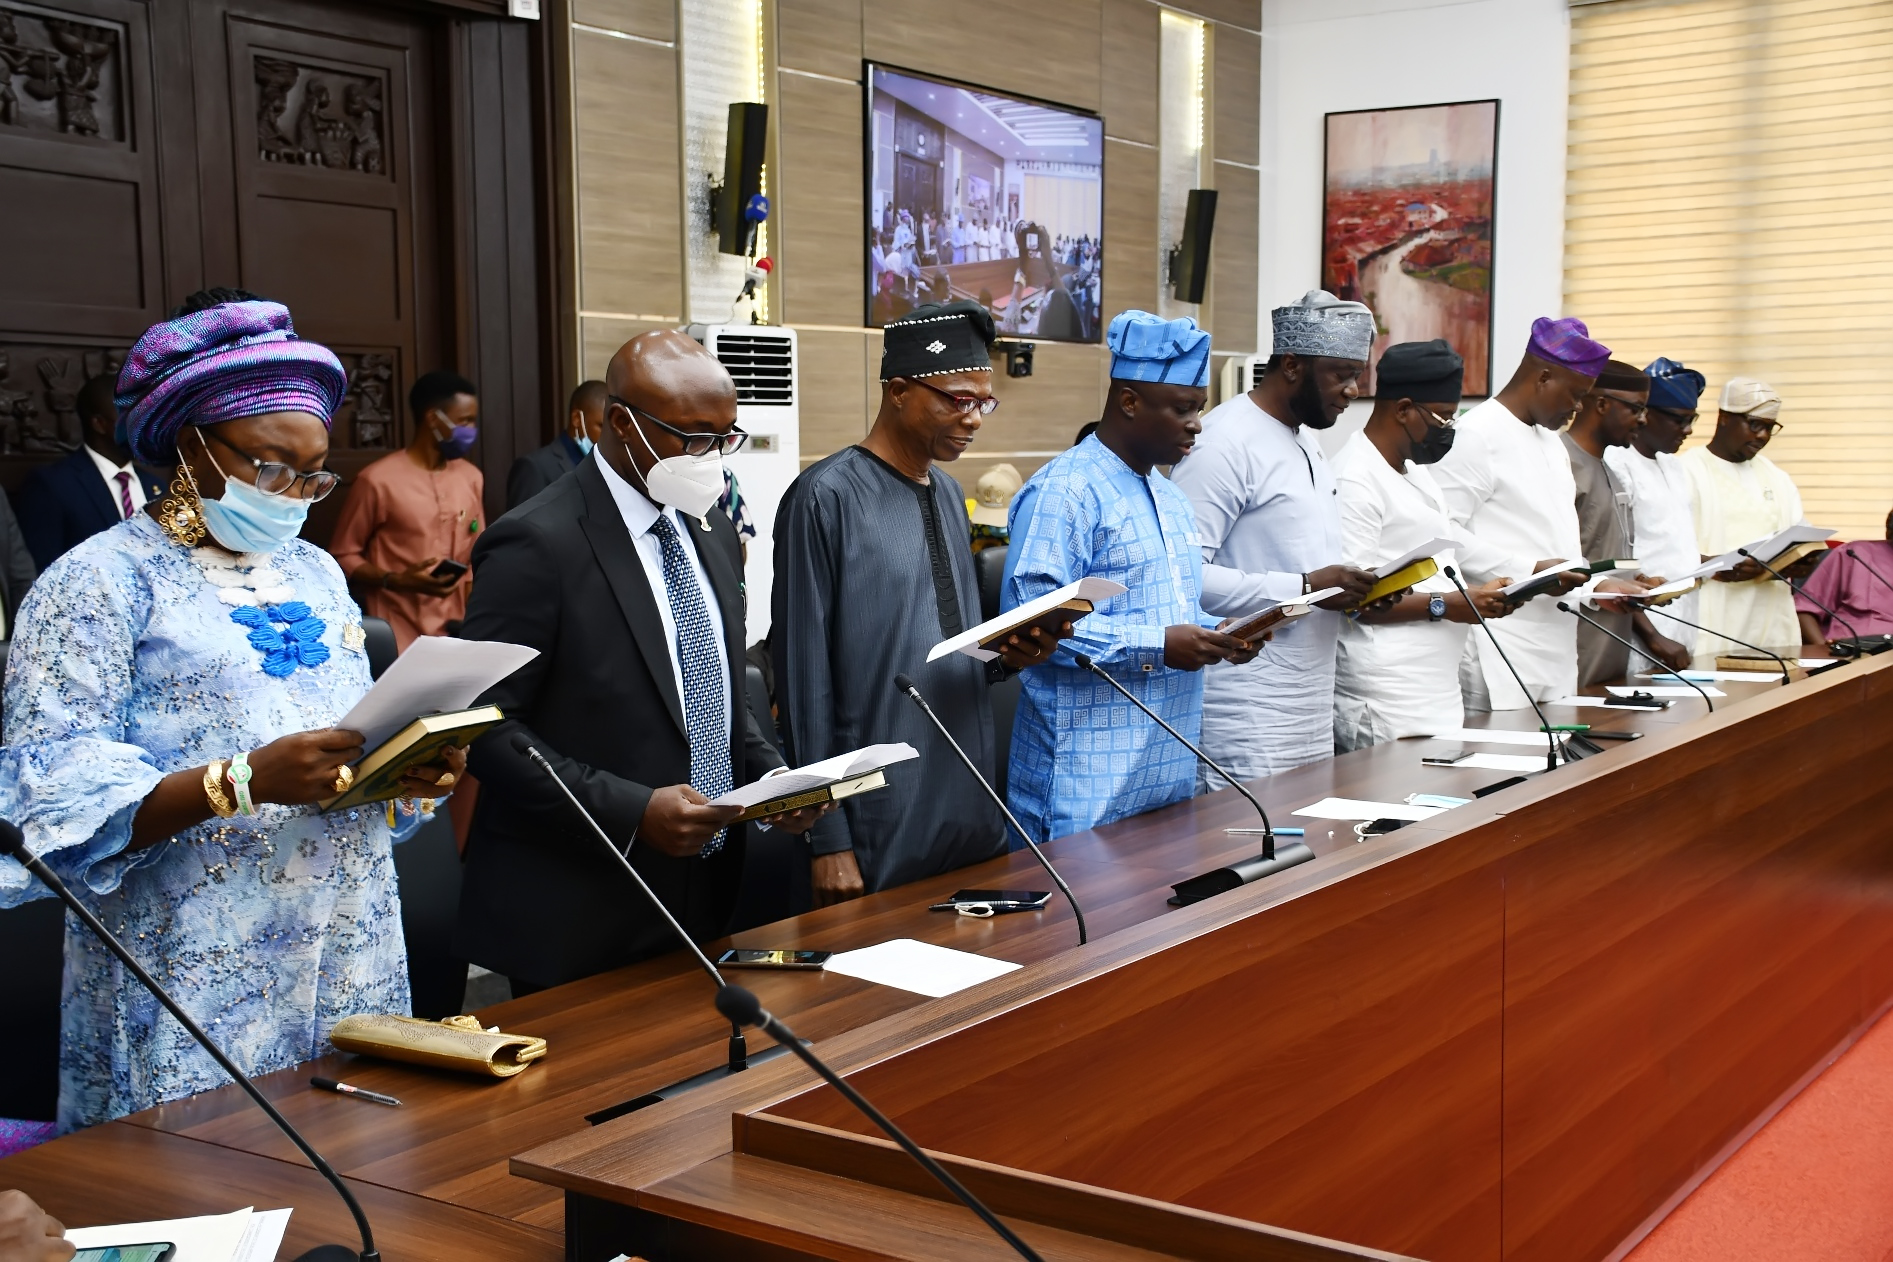 PHOTOS: Makinde Swears In 10 Commissioners, President, Customary Court -  InsideOyo.com